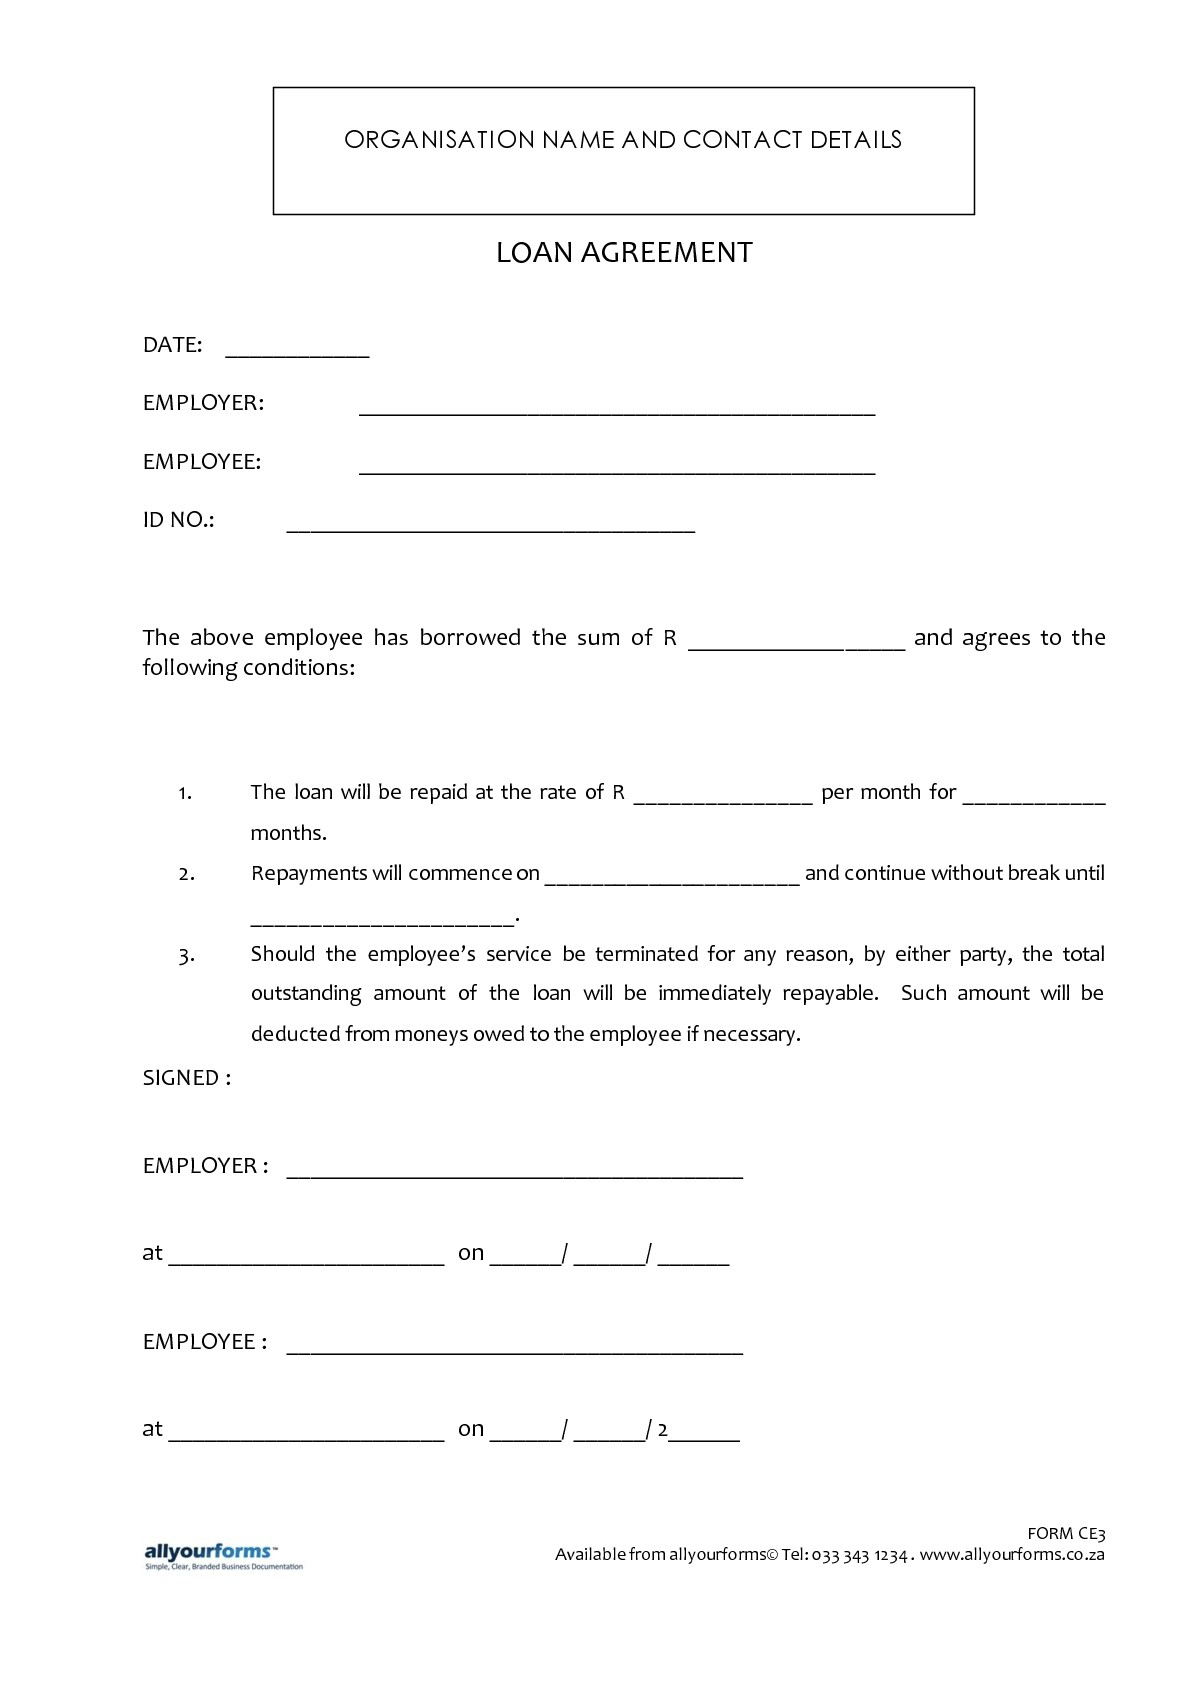 Cash Loan Agreement Free Printable Documents